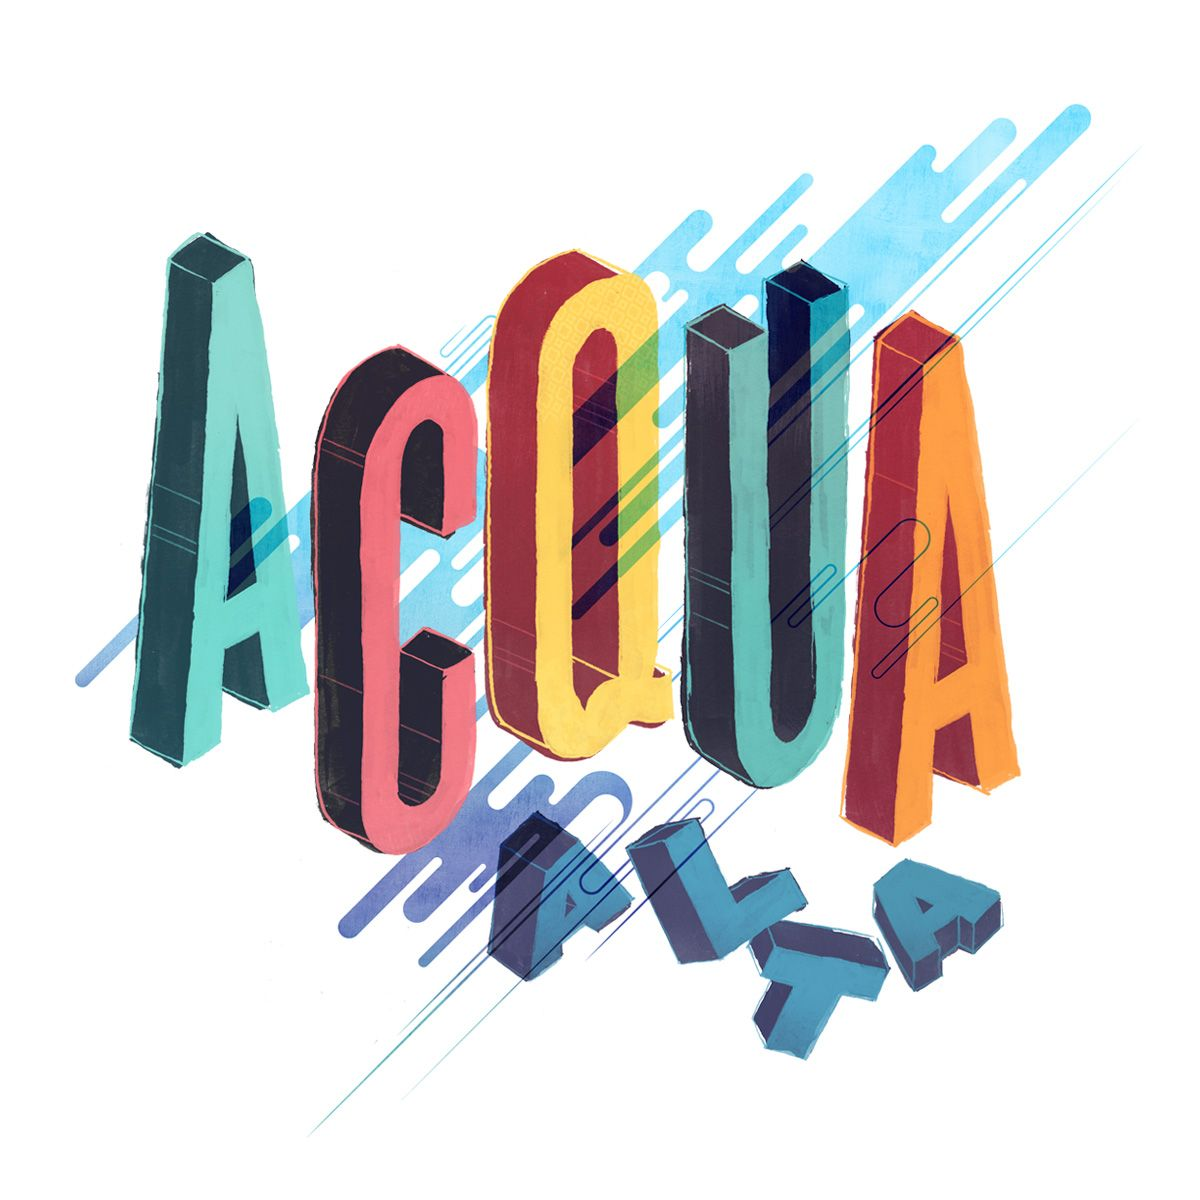 Acqua Alta - Venice, Italy. #Design by Jay Quercia. #type #shirt